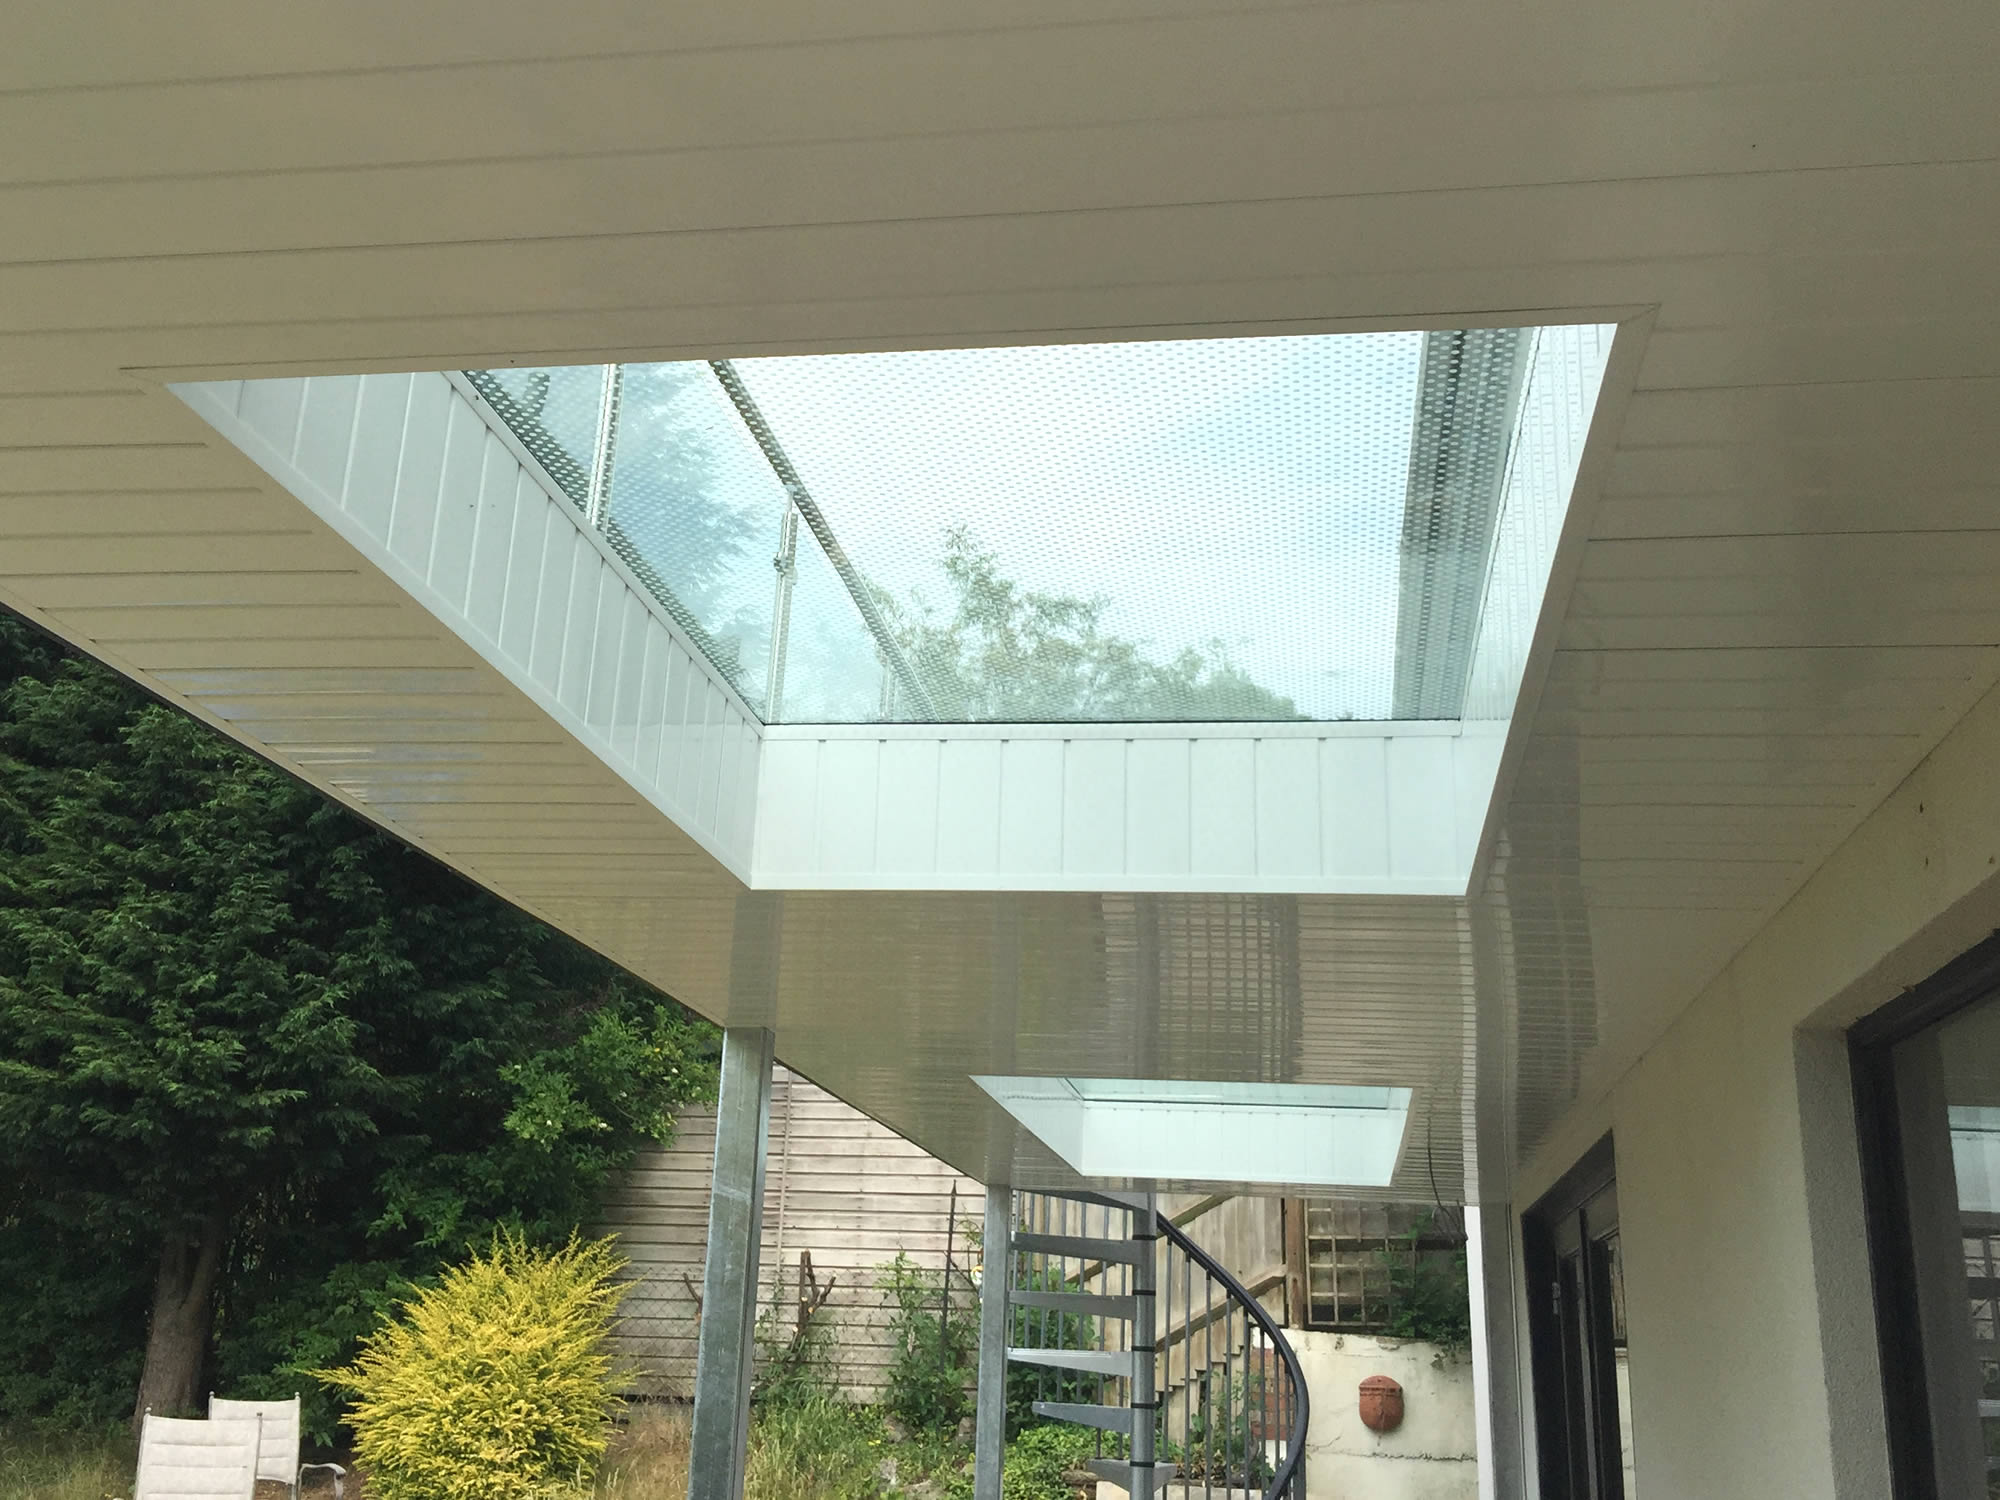 Glass flooring for balconies from sunrock balconies for Glass balcony